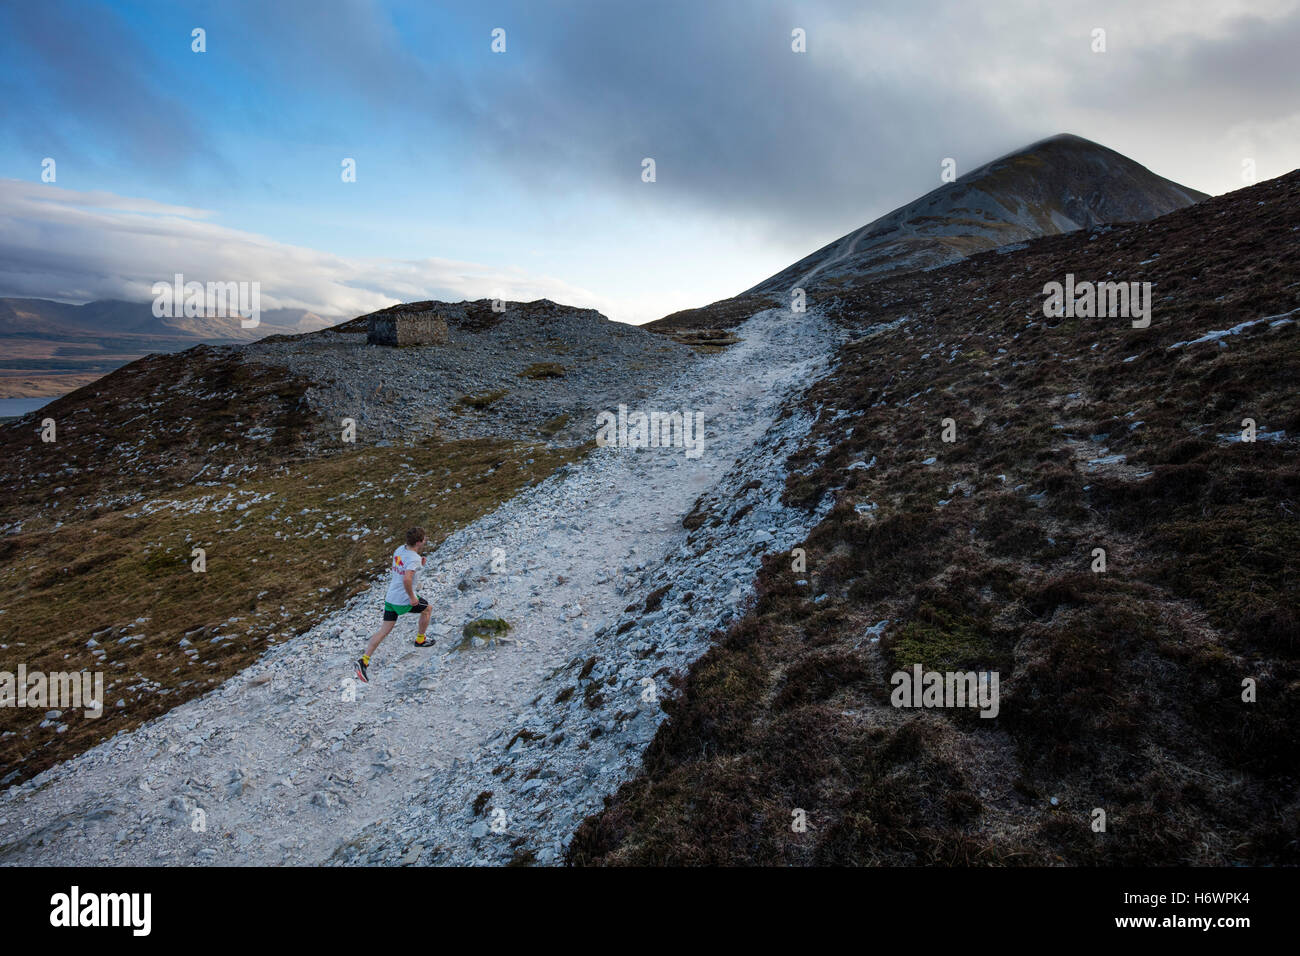 Triathlete Con Doherty running up Croagh Patrick, County Mayo, Ireland. - Stock Image